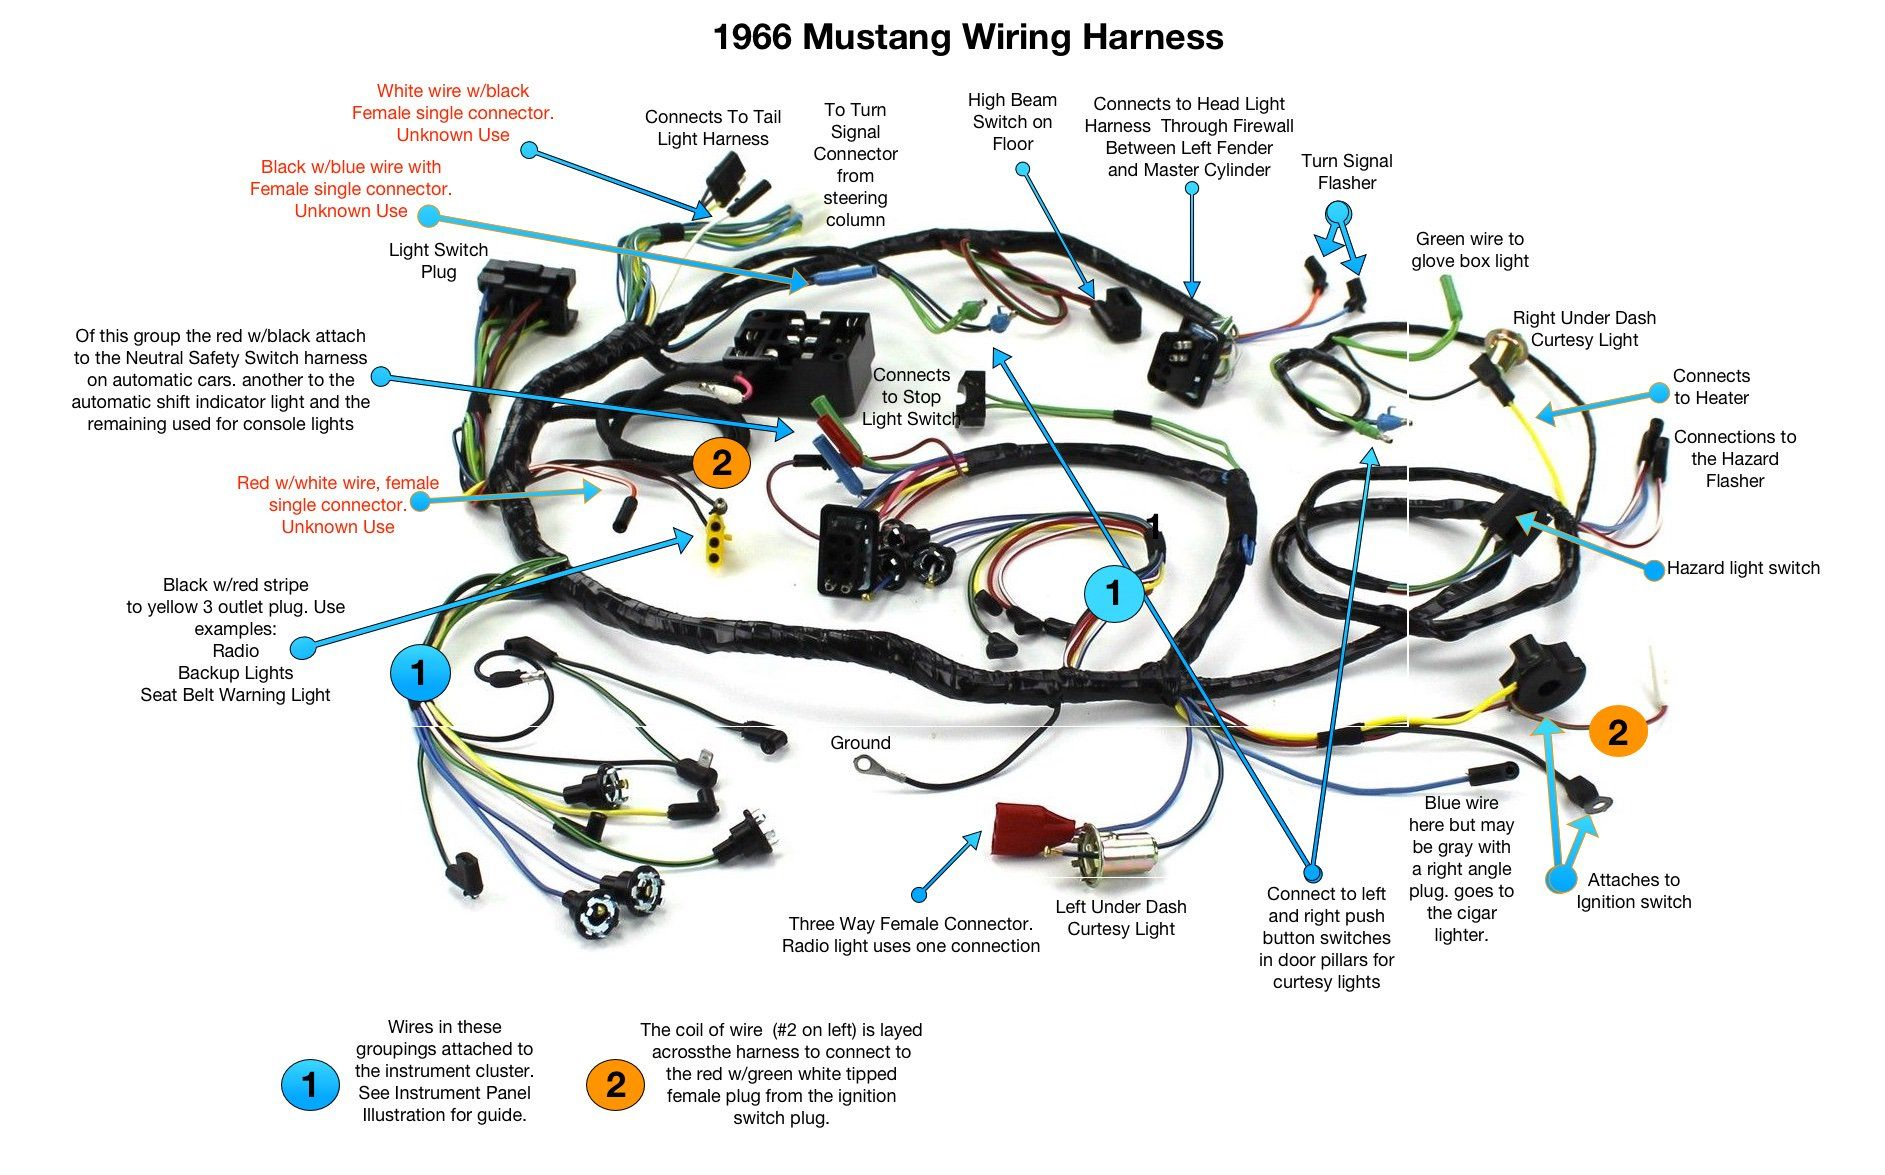 23 Automatic Engine Wiring Harness Diagram Technique Https Bacamajalah Com 23 Automatic Engine Wiring Harness Diagra Electrical Wiring Diagram Mustang Wire